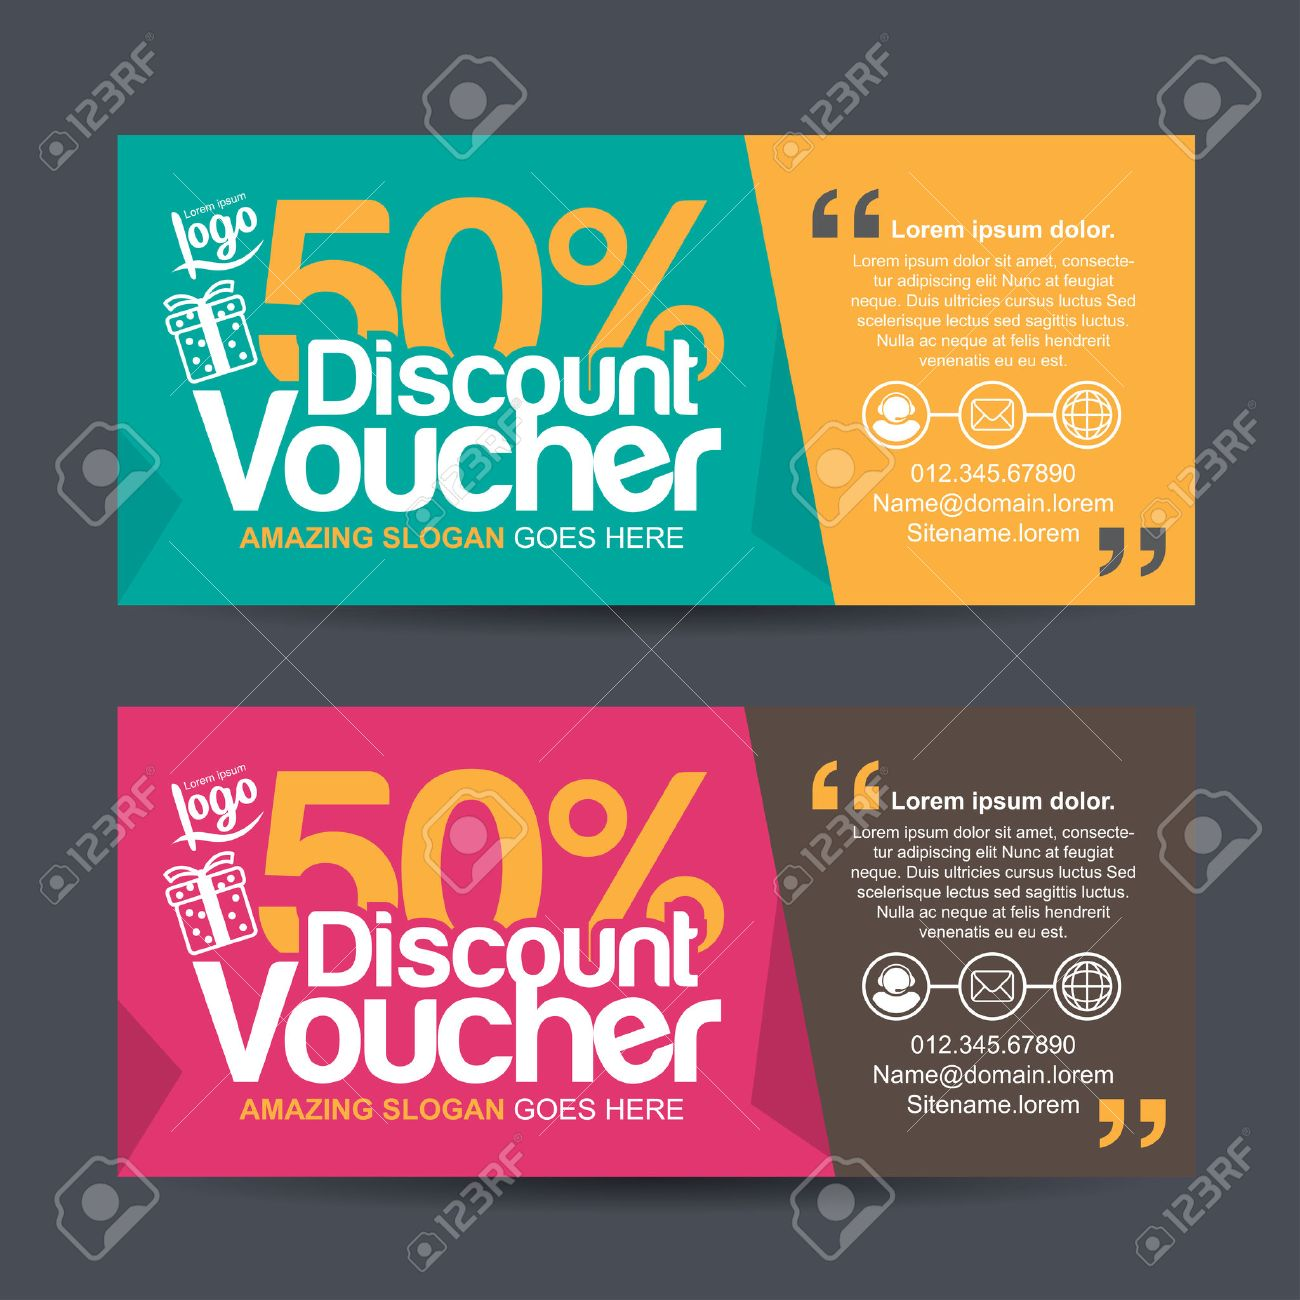 Gift Voucher Template With Colorful Patterncute Gift Voucher – Voucher Design Template Free